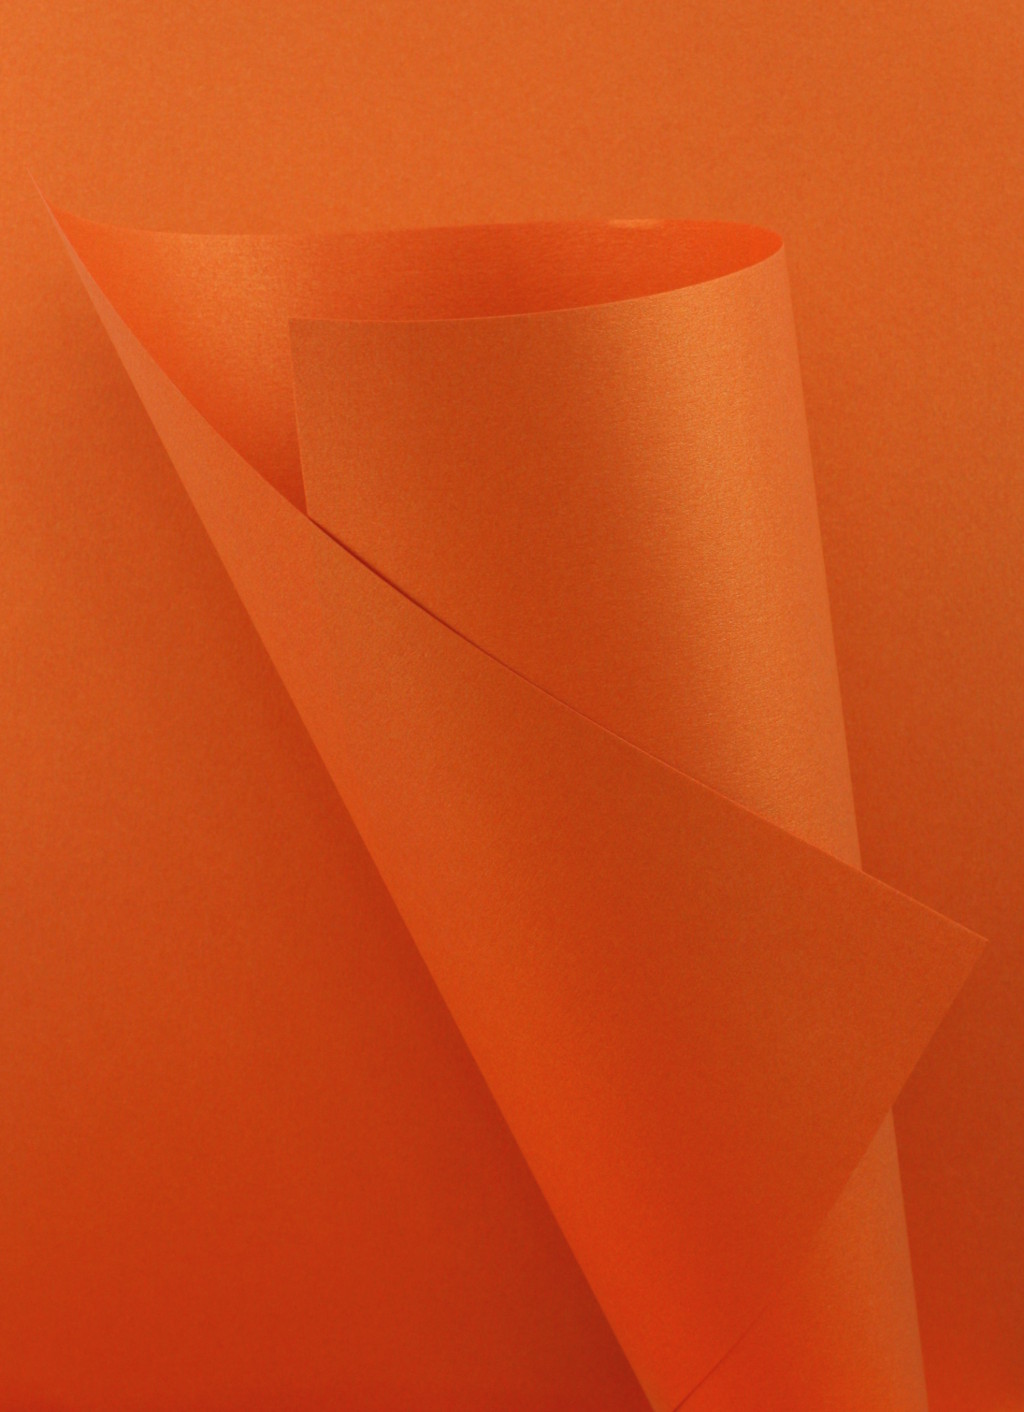 Pearlescent Orange Paper 120gsm